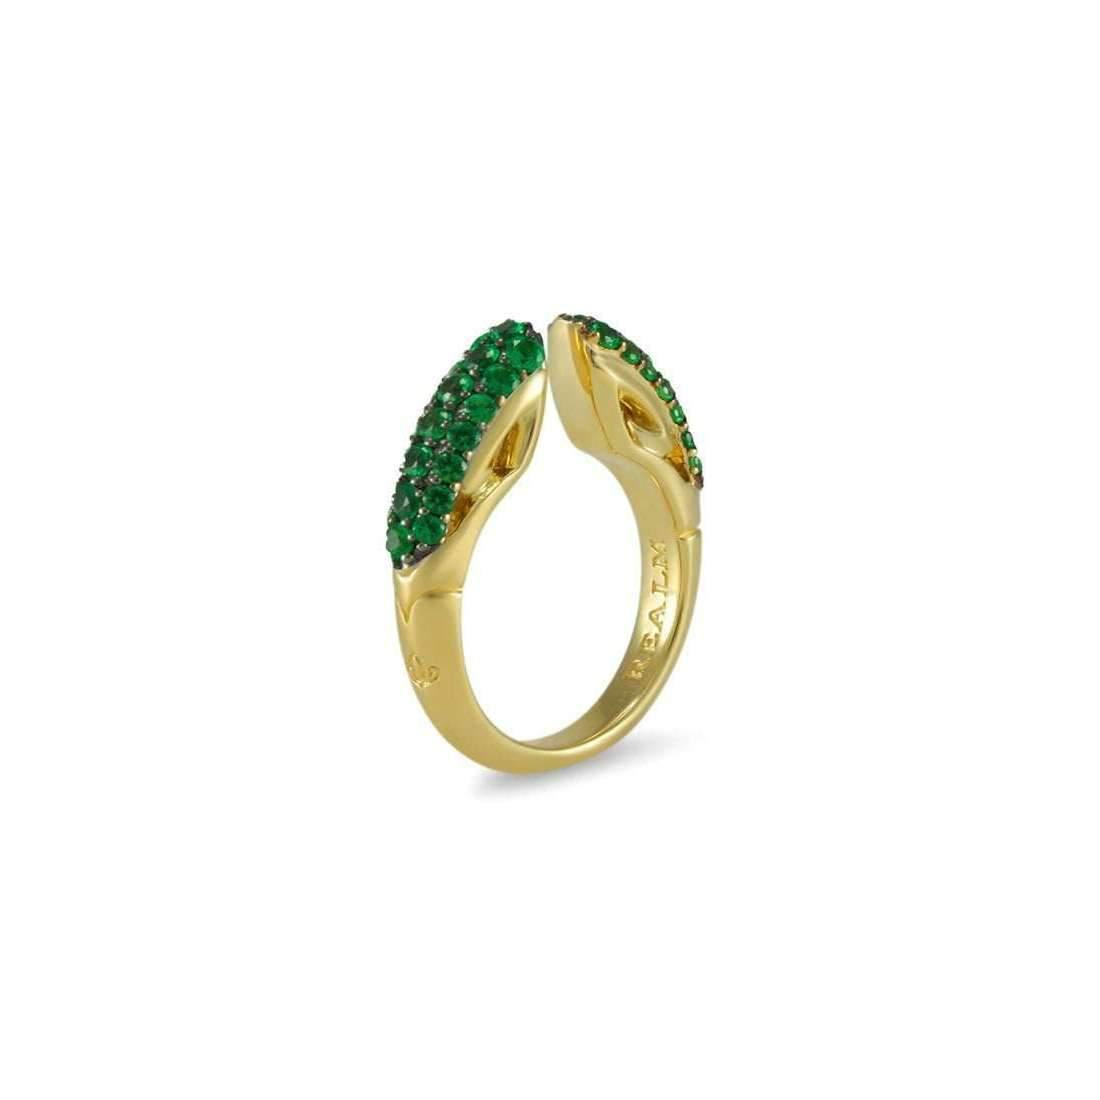 Realm Sceptre Pave Ring 5.0 - UK M - US 6 - EU 52 3/4 RyIODYNdk